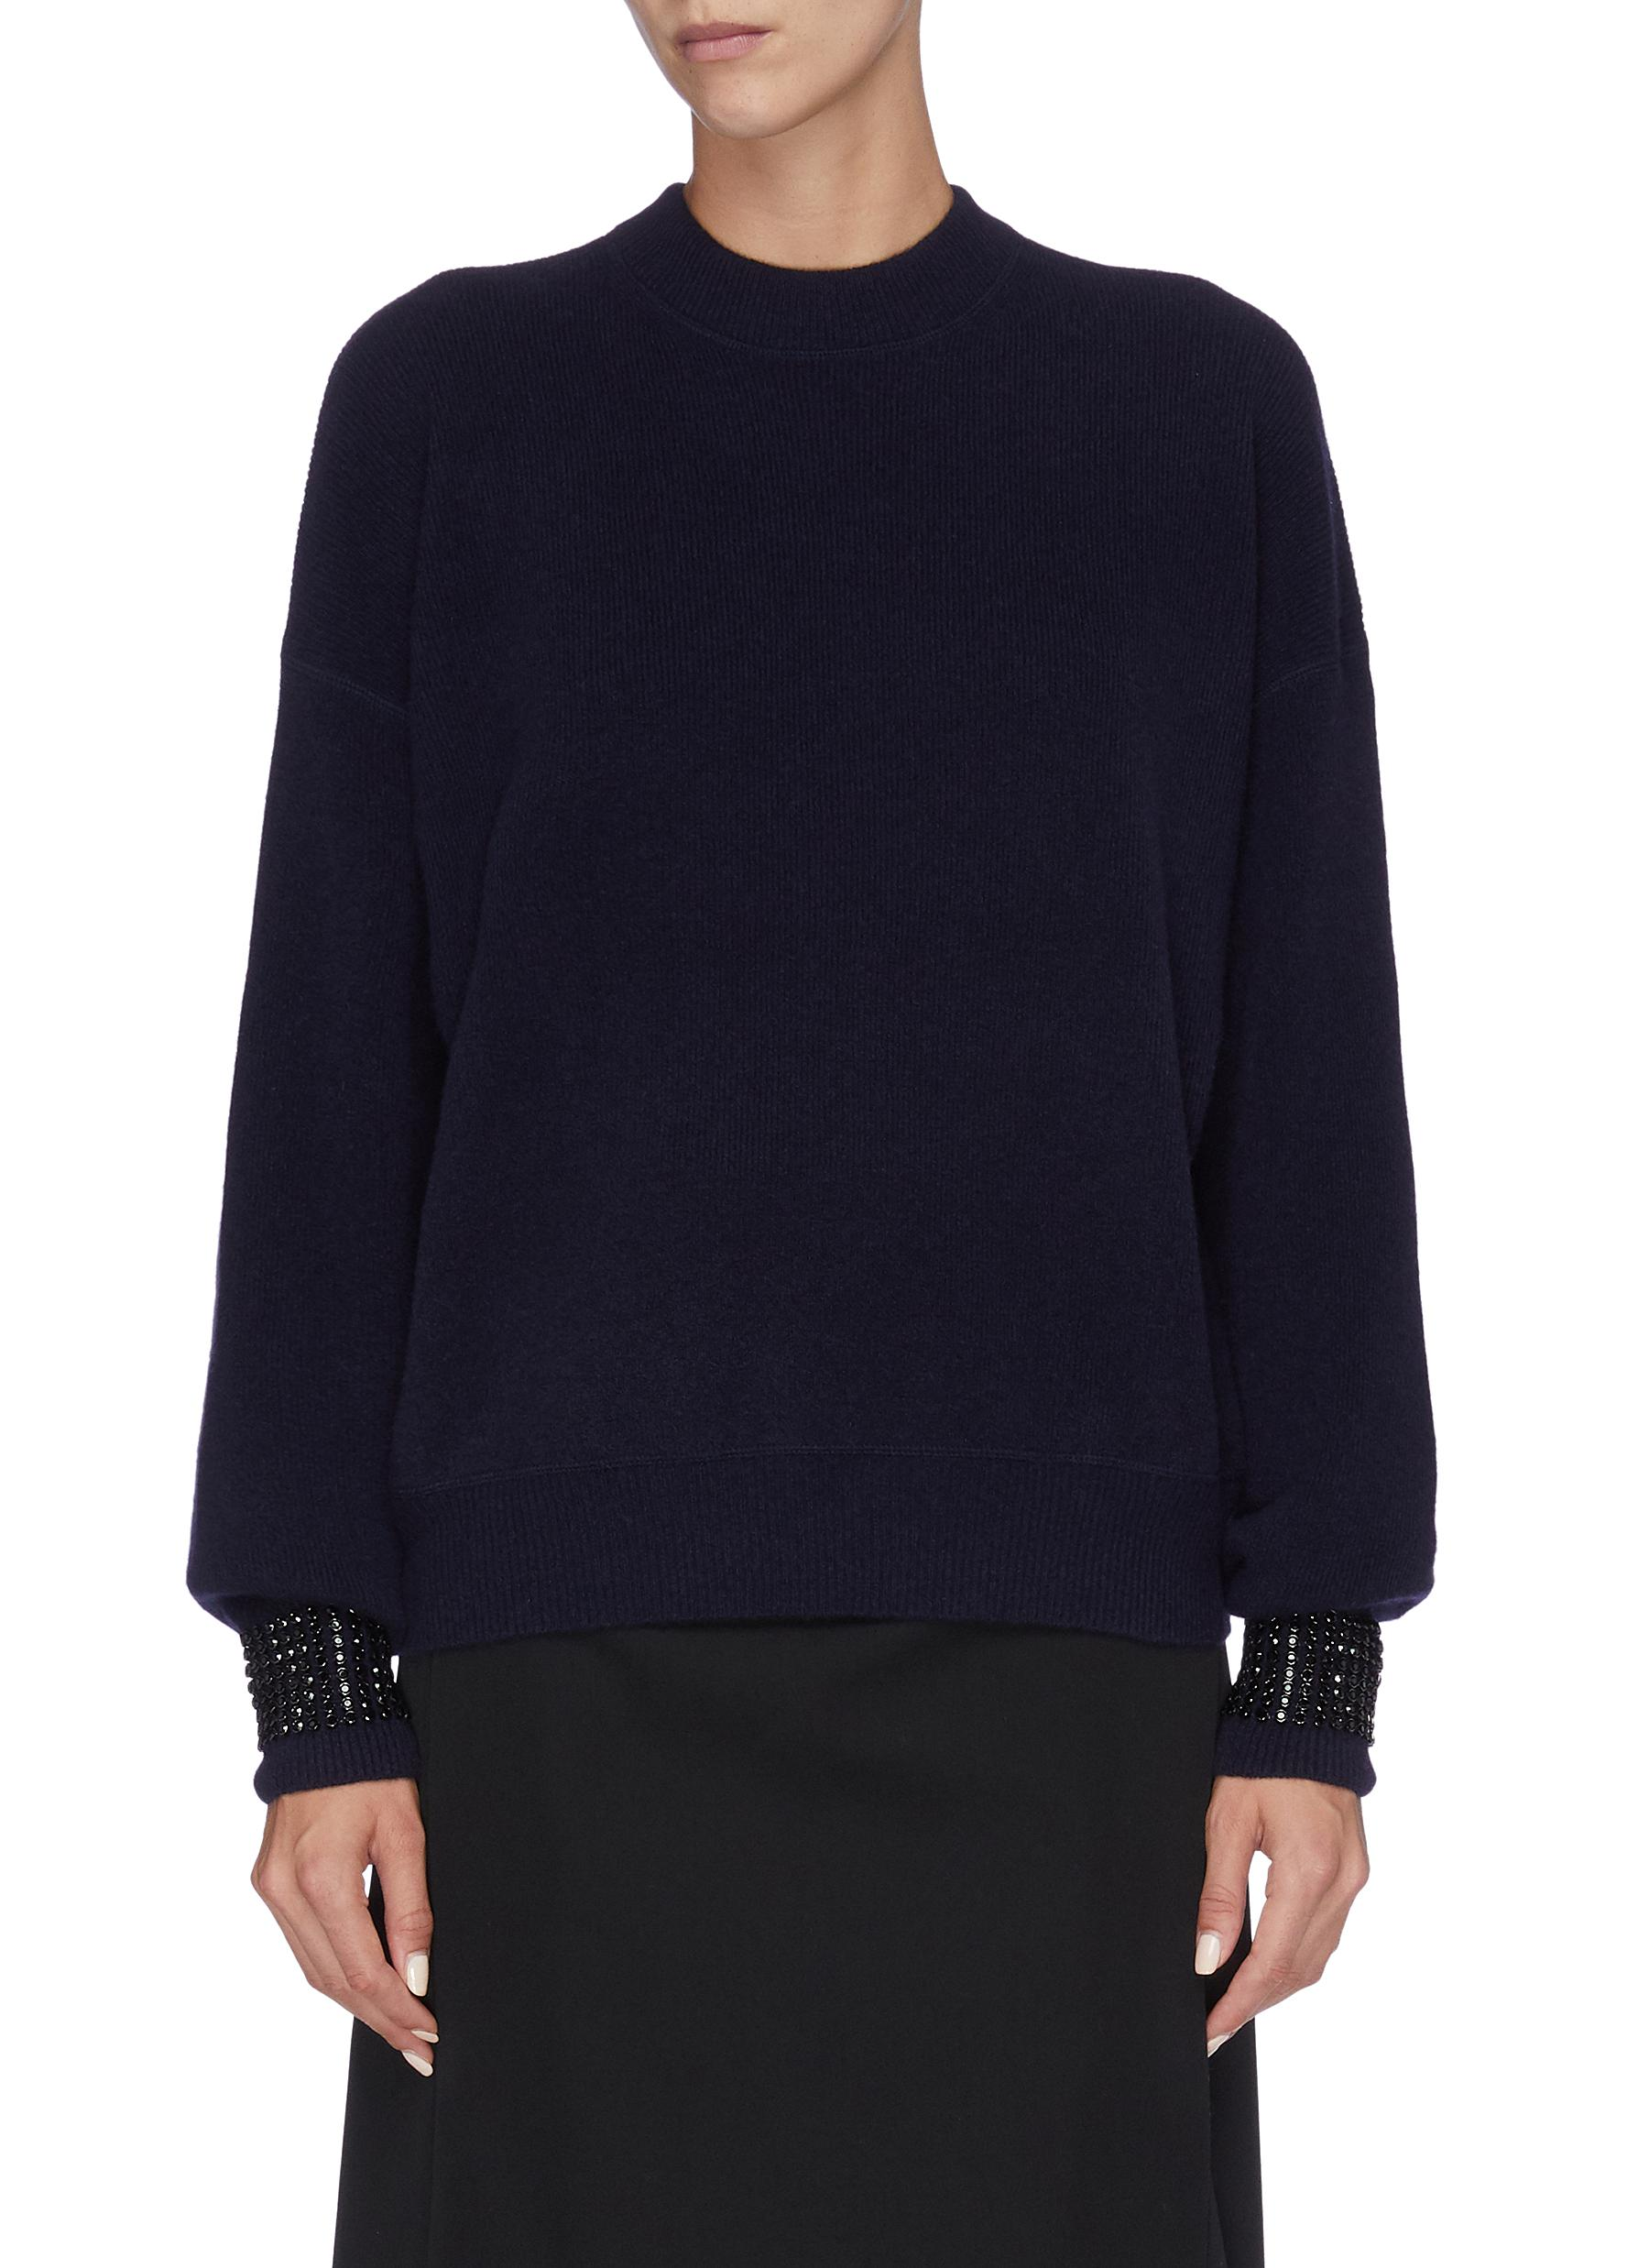 Strass embellished cuff sweater by Alexanderwang